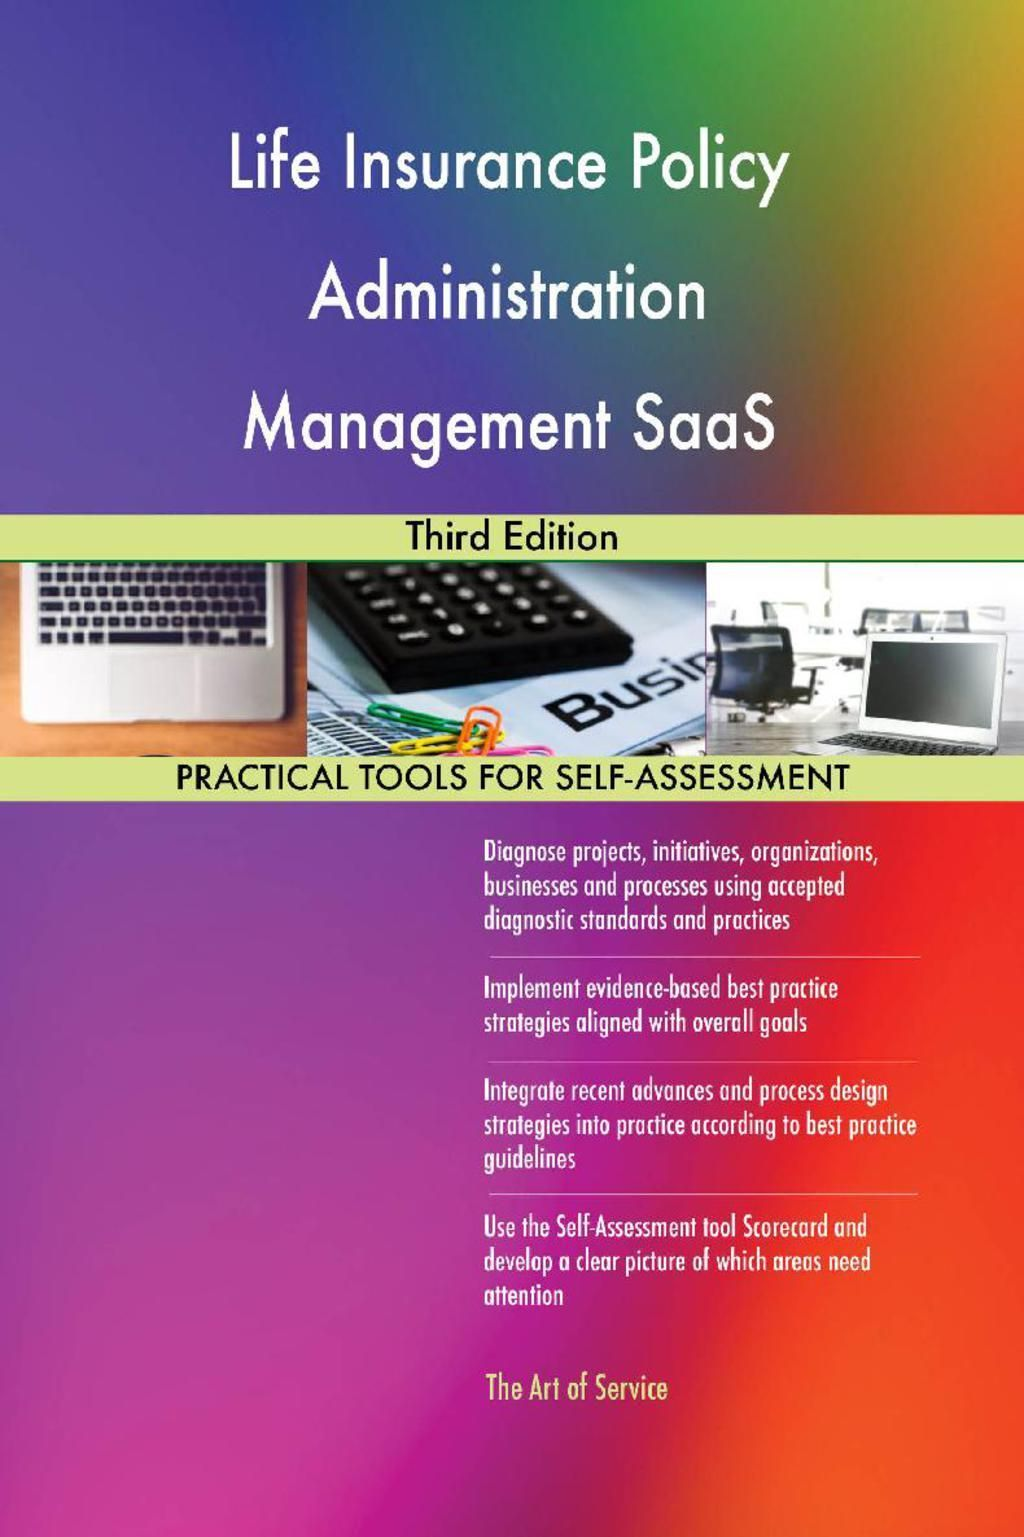 Life Insurance Policy Administration Management Saas Third Edition Ebook In 2020 With Images Life Insurance